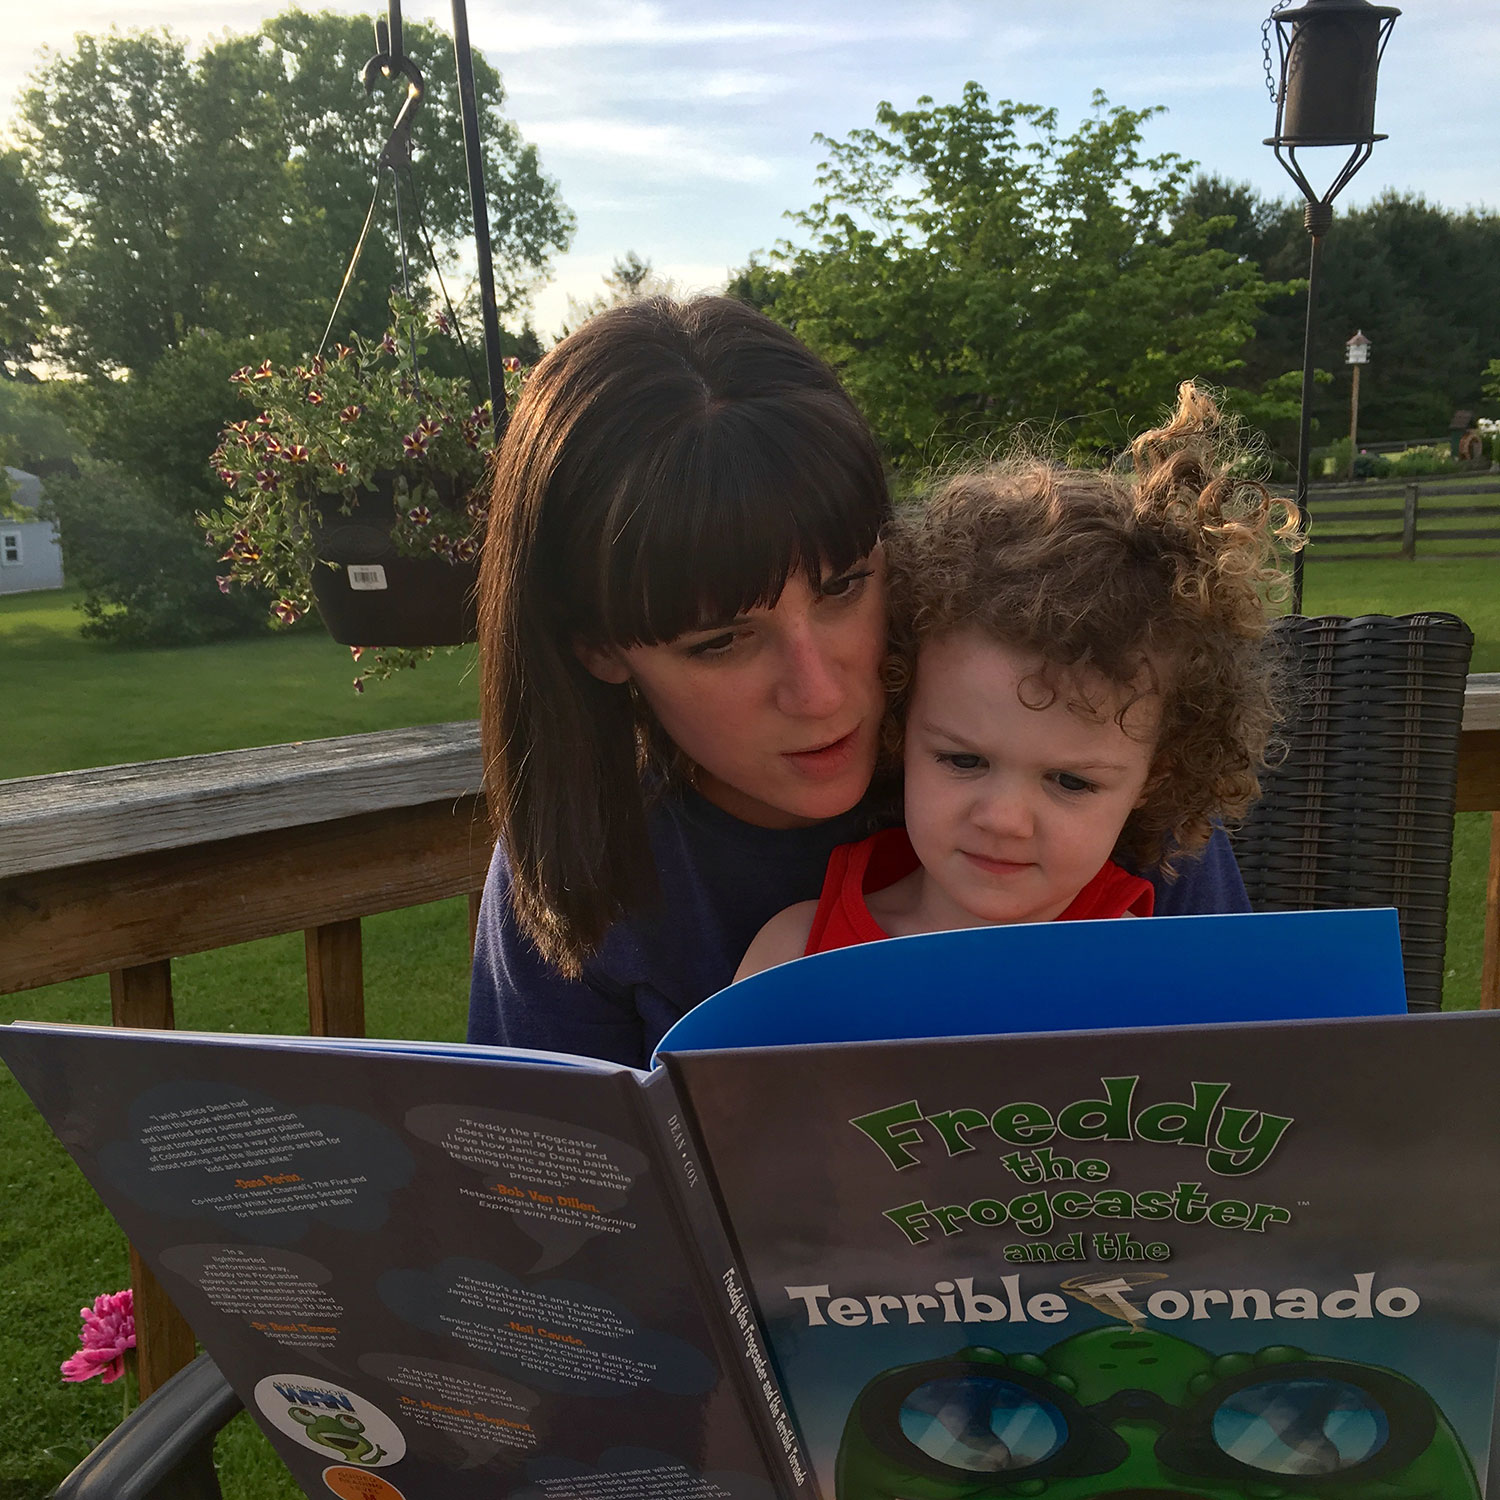 Katie Wheatley of ustornadoes.com reading to her daughter.